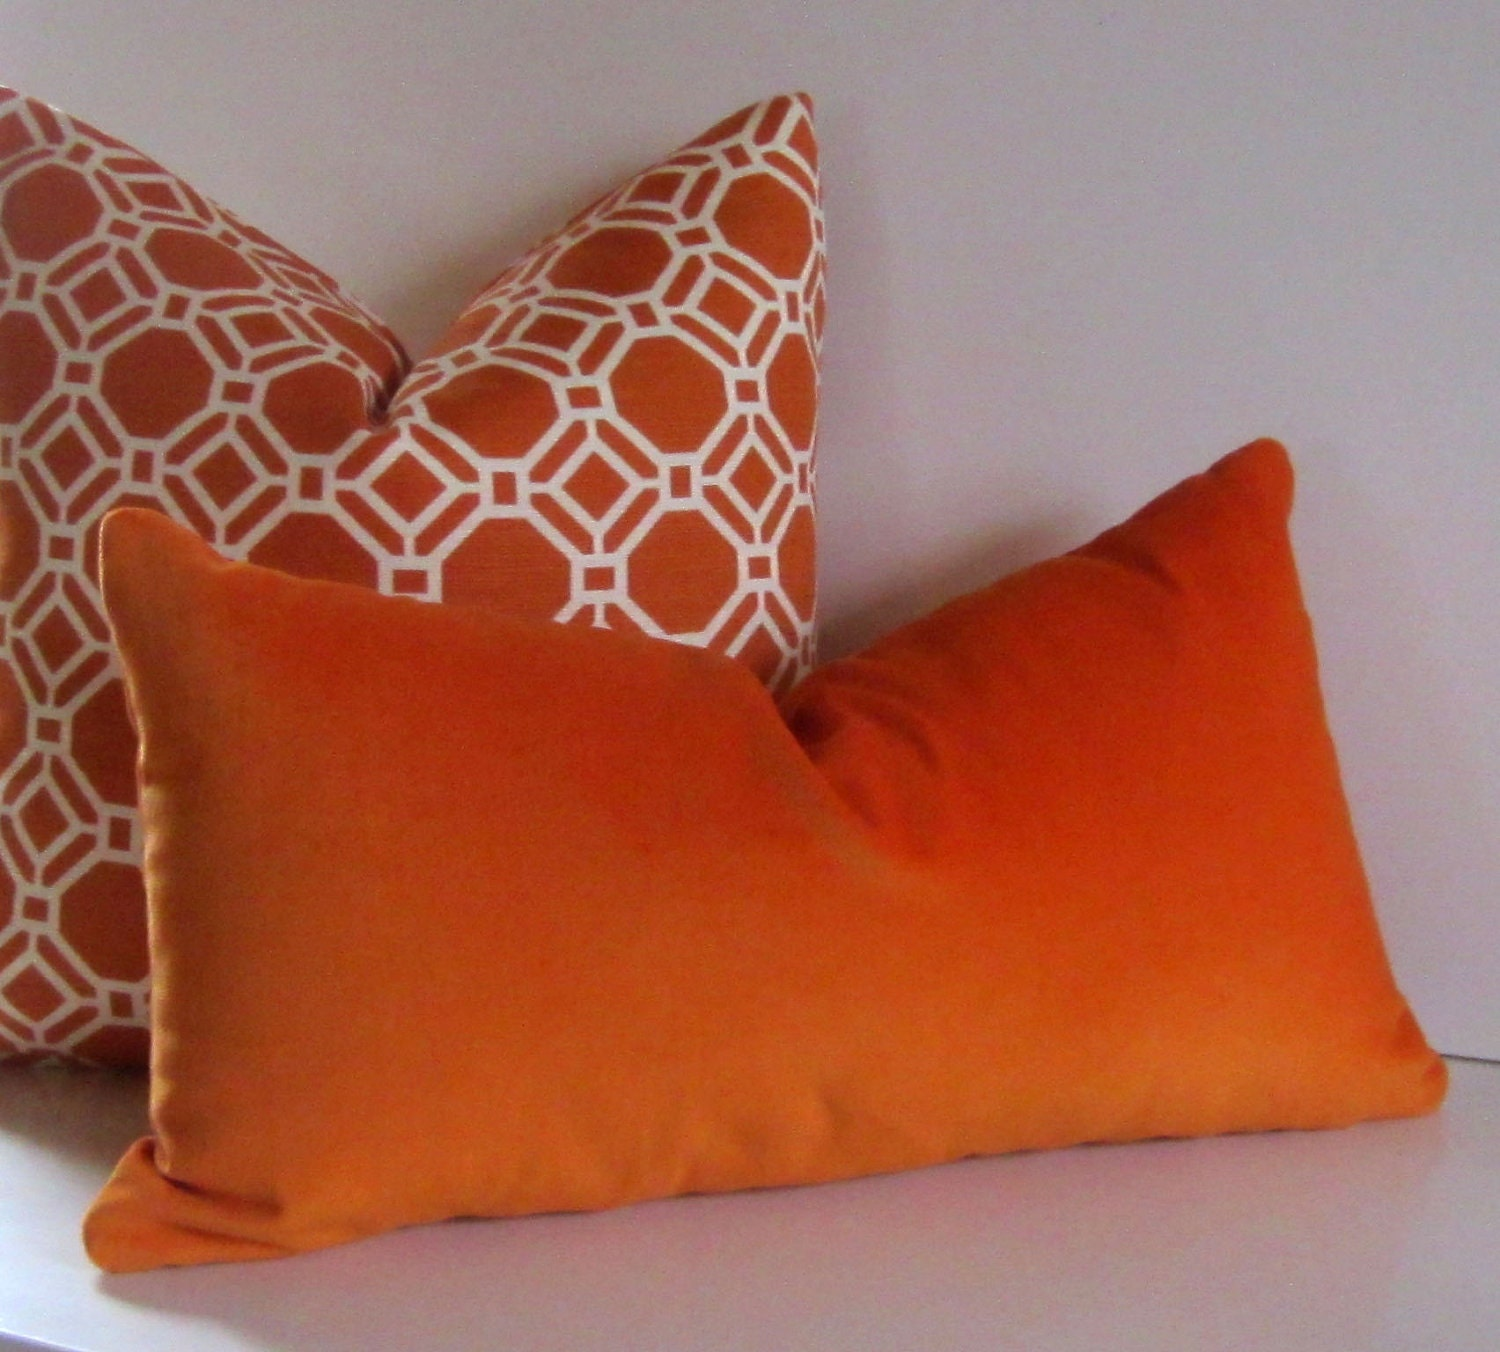 Throw Pillows With Orange : Orange velvet 12 X 22 inch Decorative Pillow lumbar